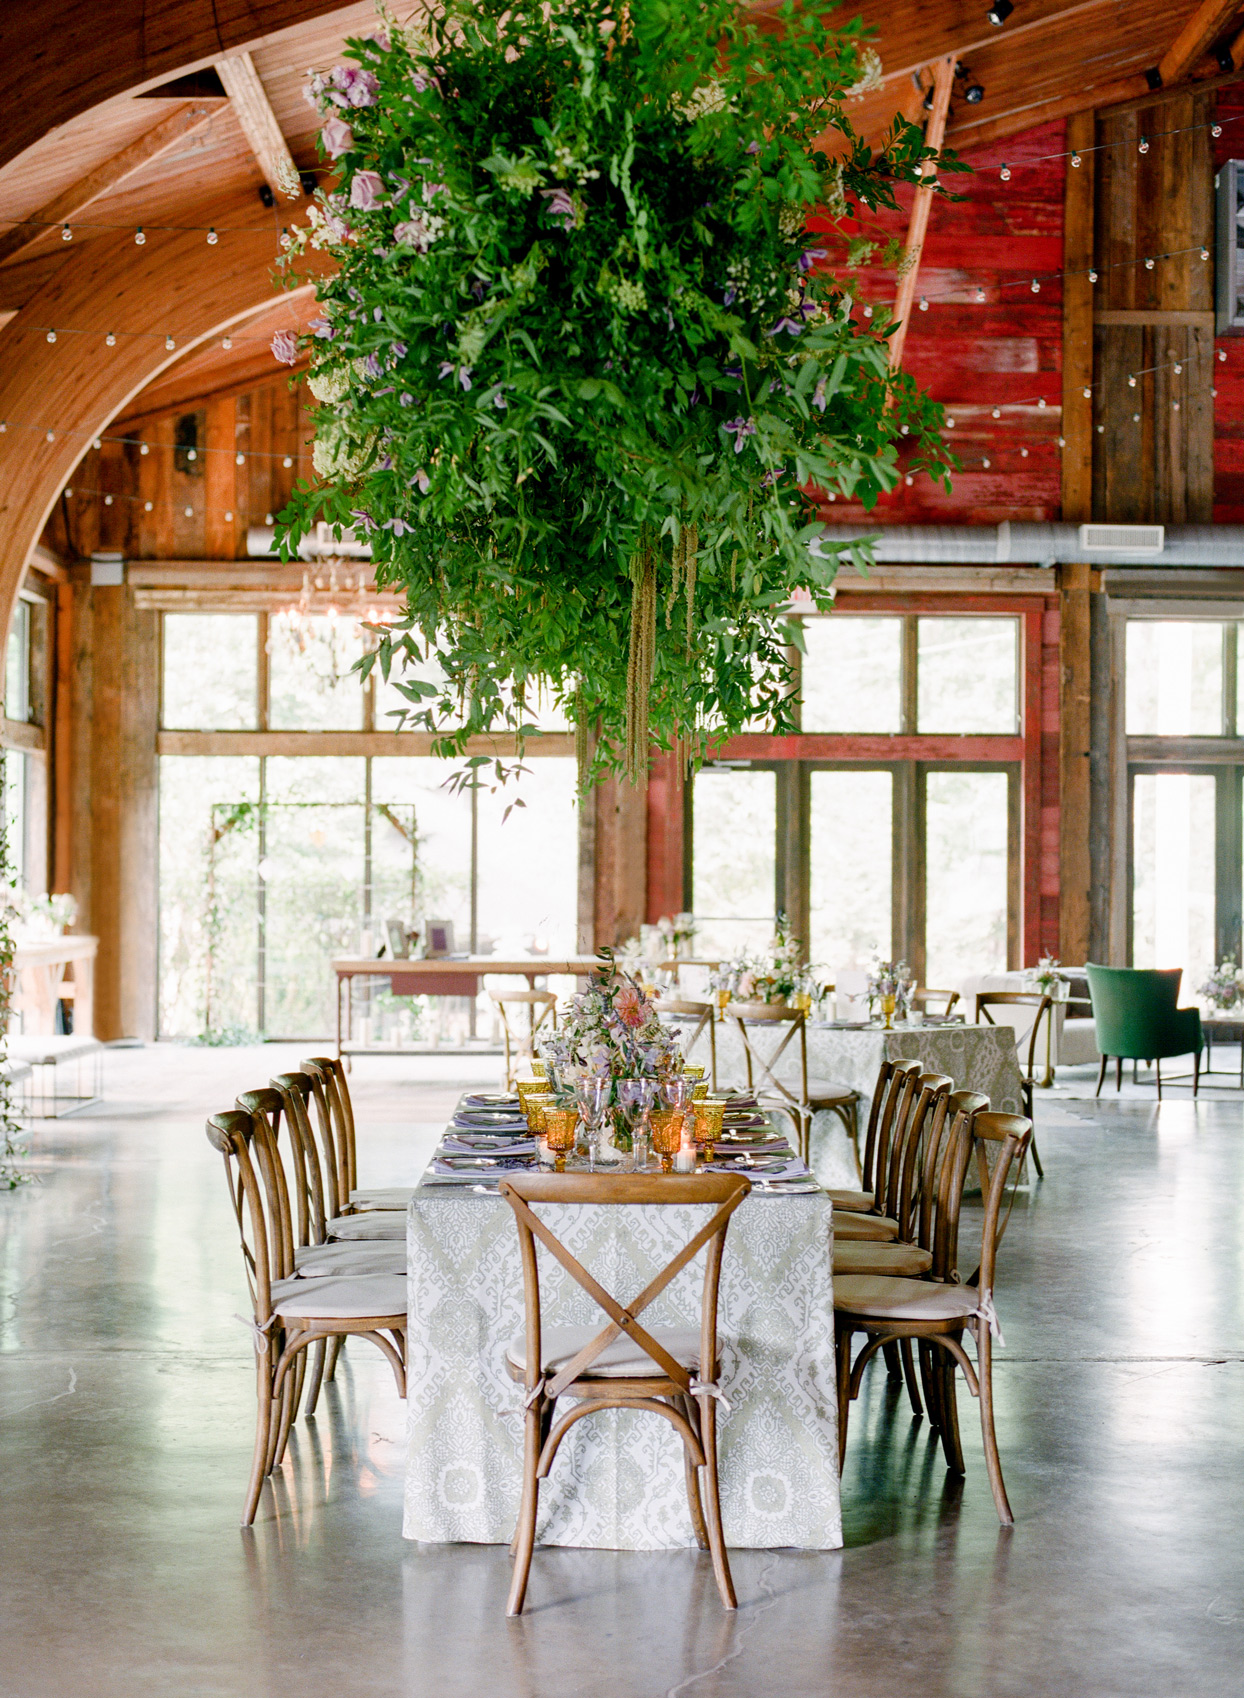 reception space with overgrown hanging garden